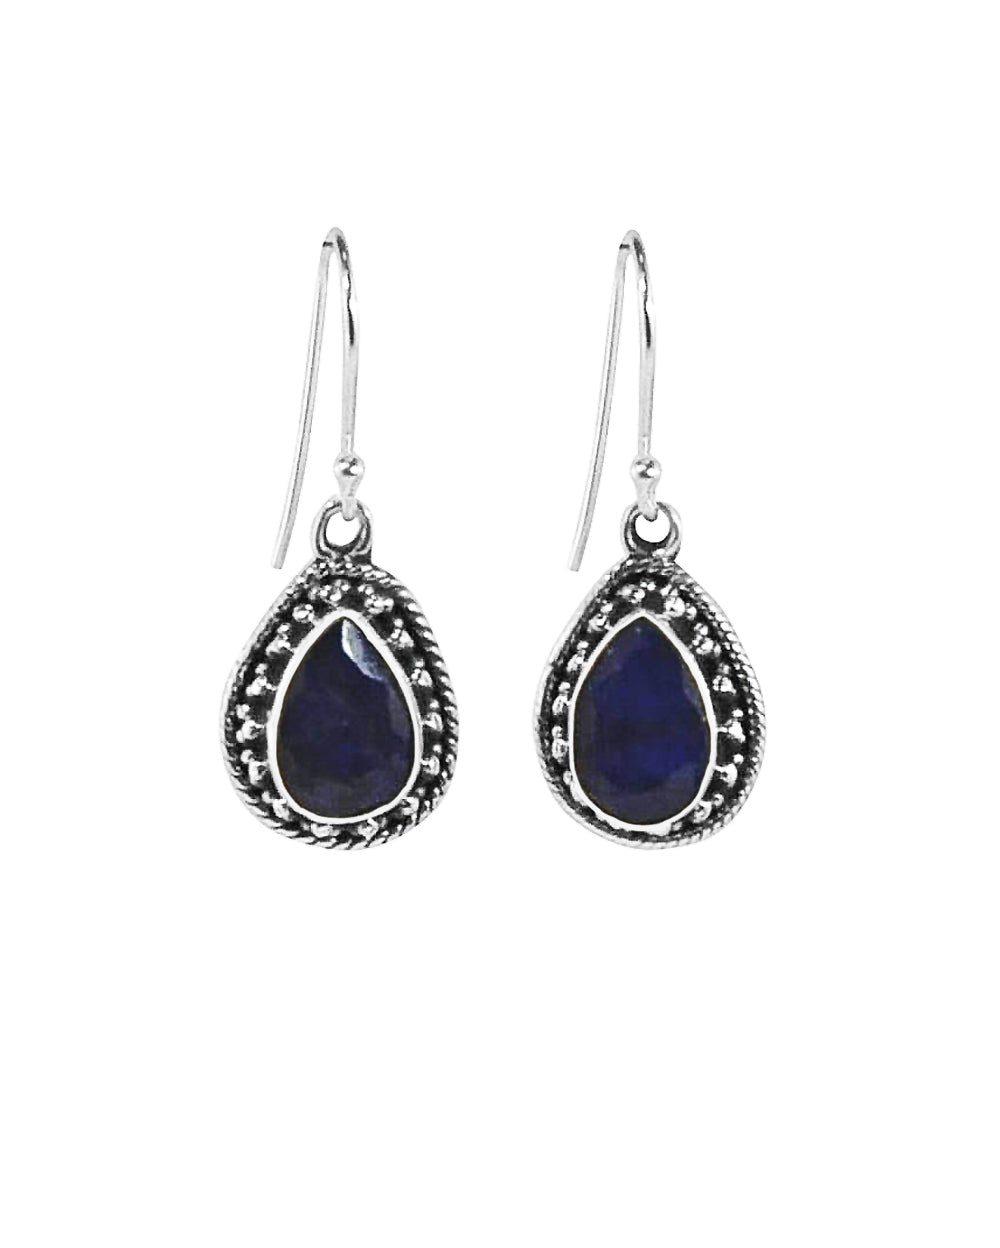 Amalfi Raw Sapphire Necklace and Earrings Set in Sterling Silver